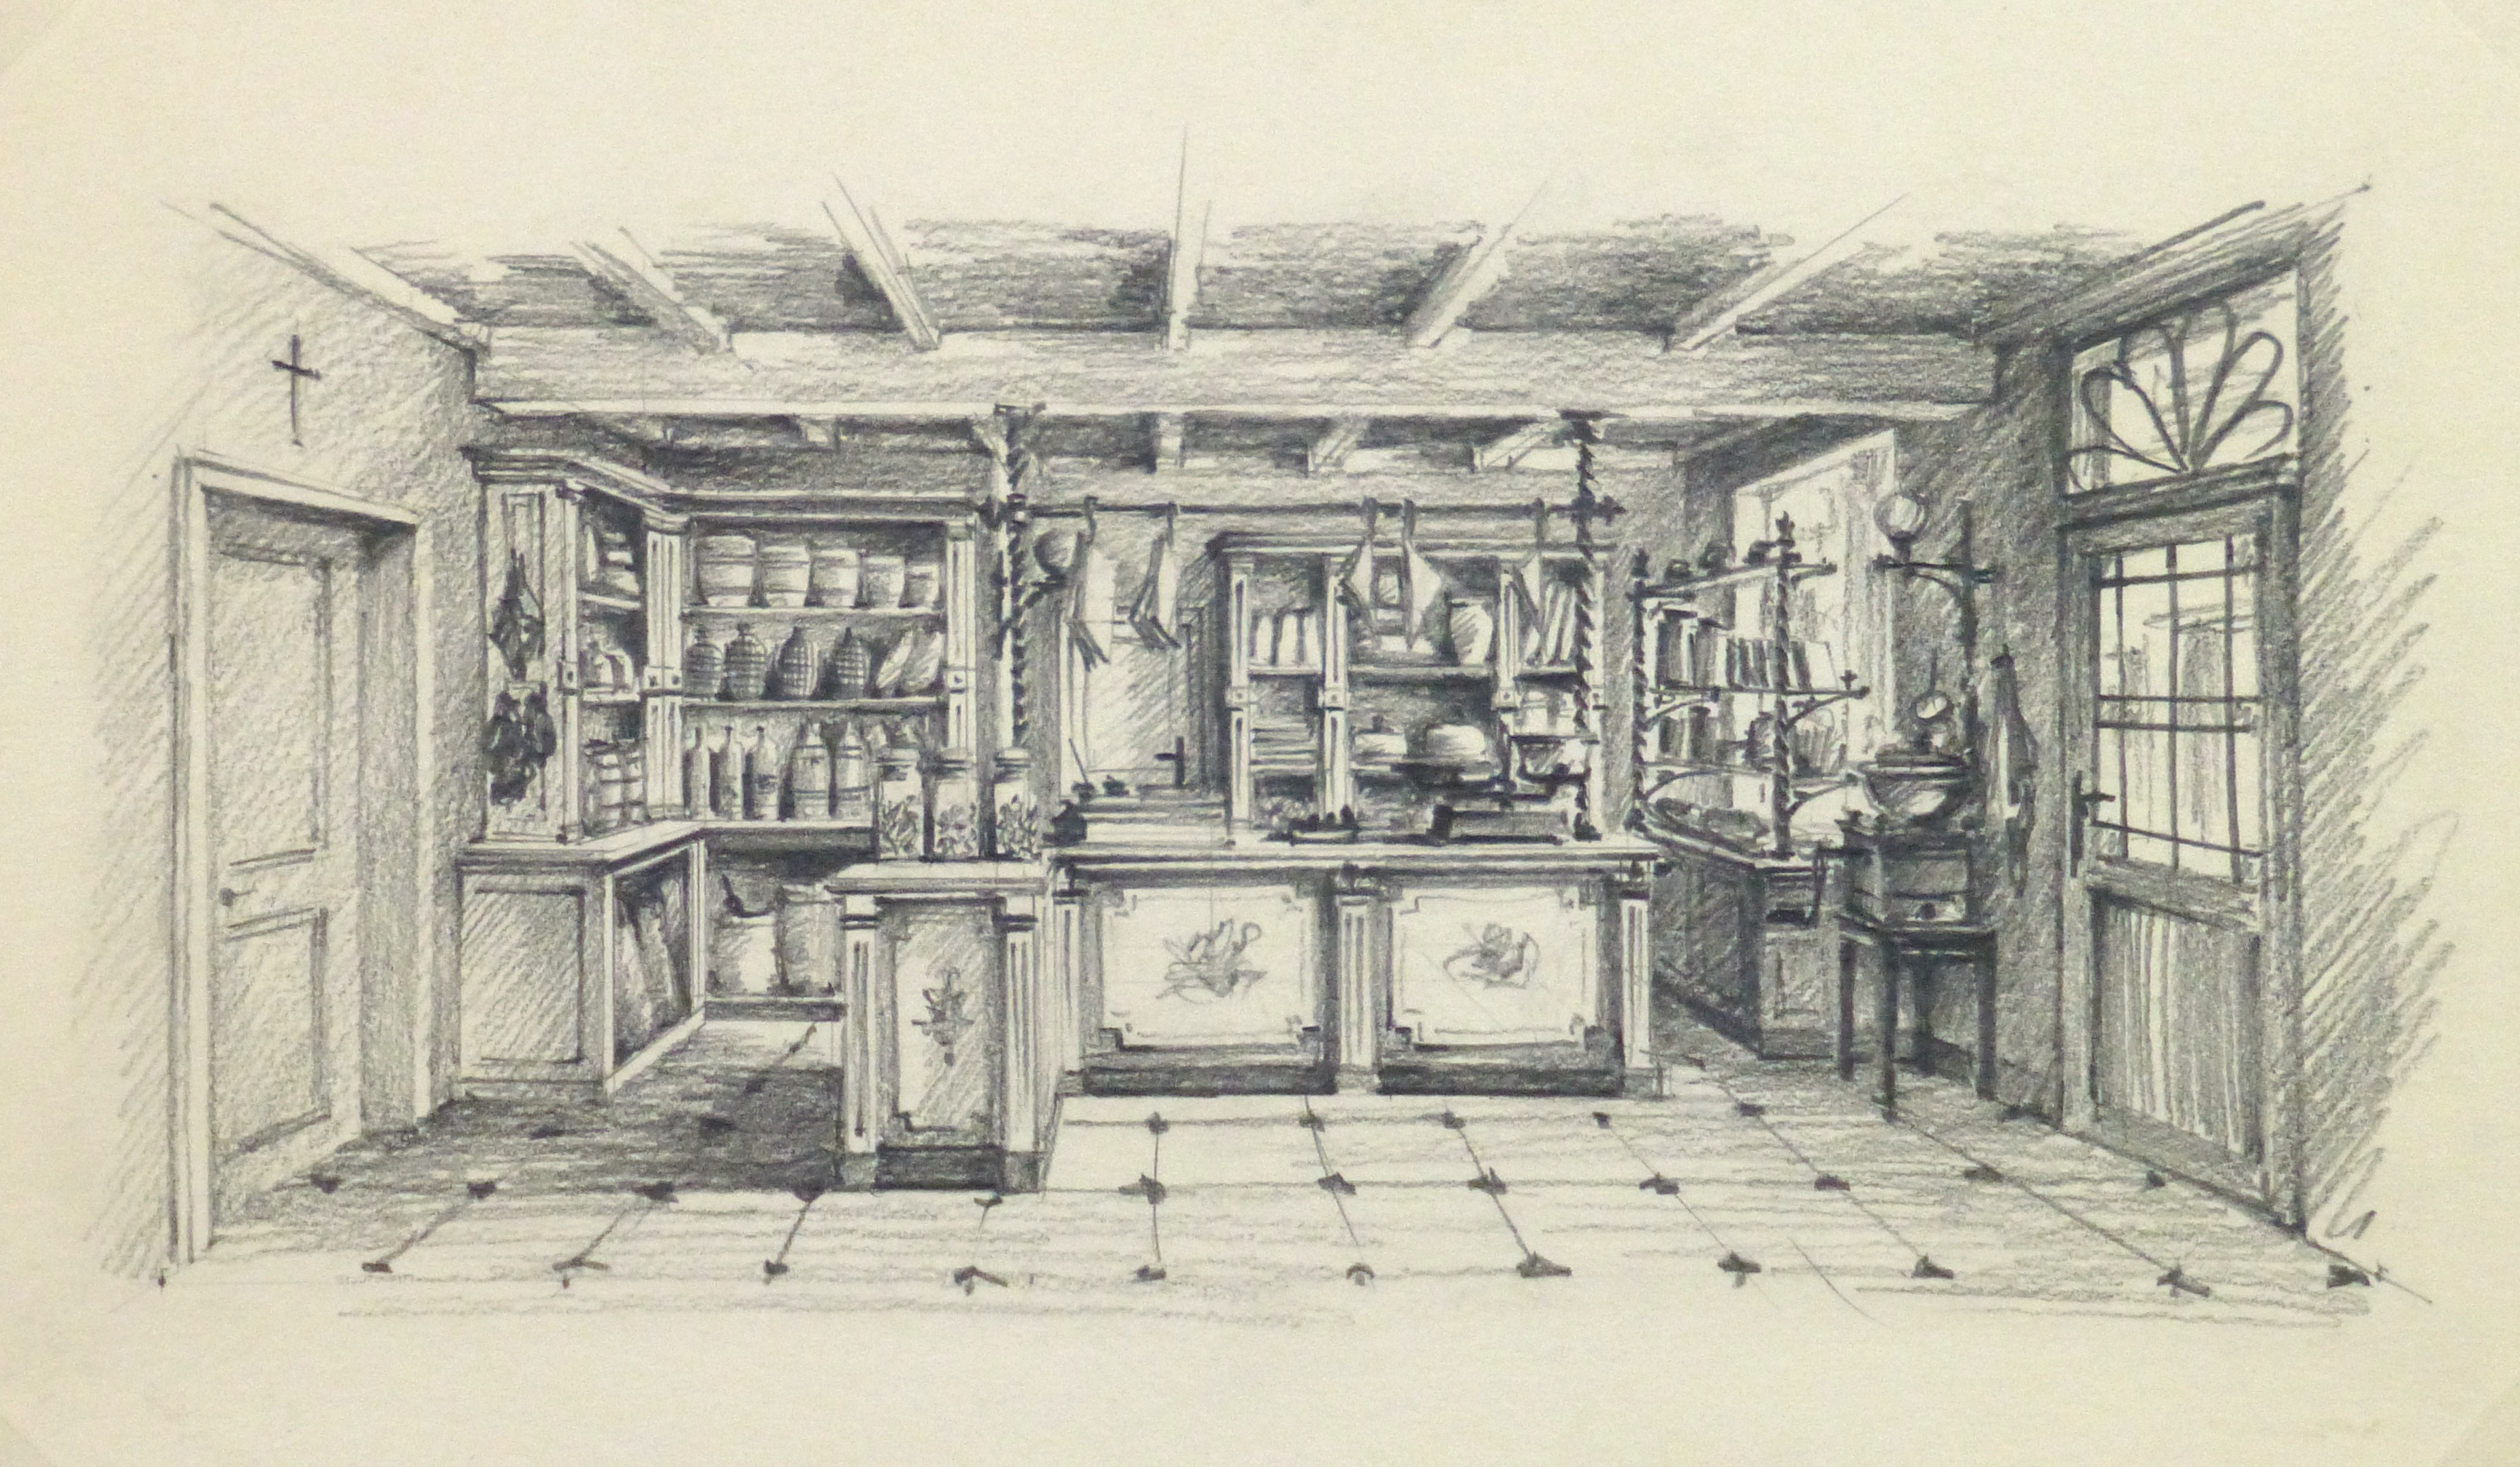 Pencil Drawing - General Store, circa 1950-main-10366M